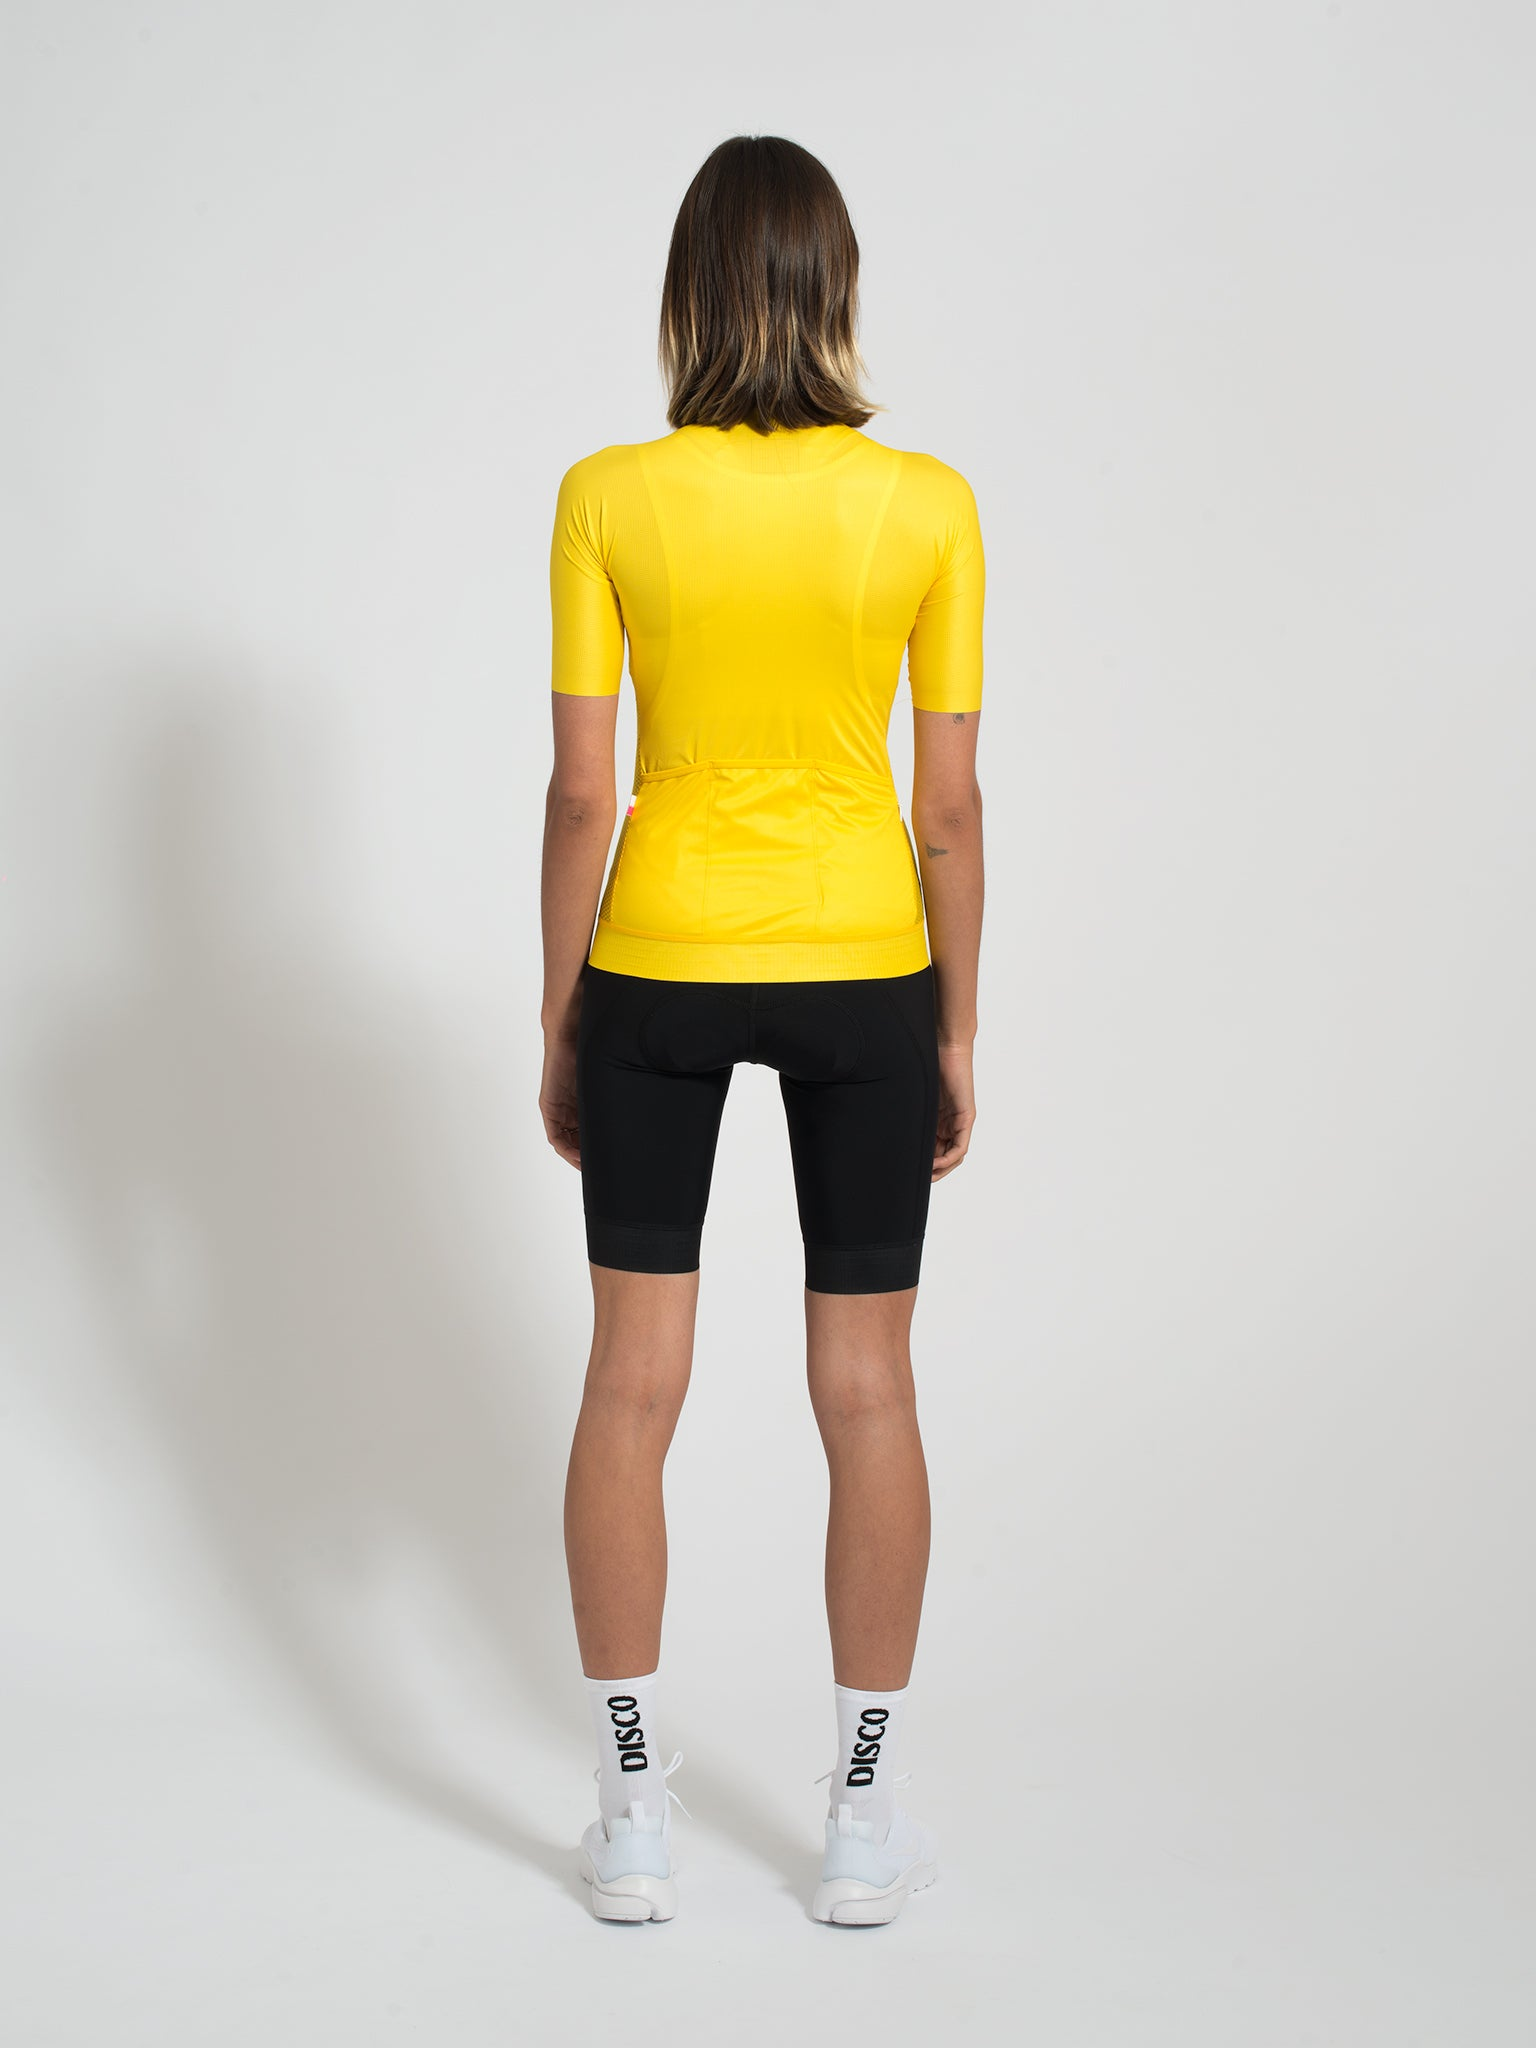 Yellow Disco Jersey Women